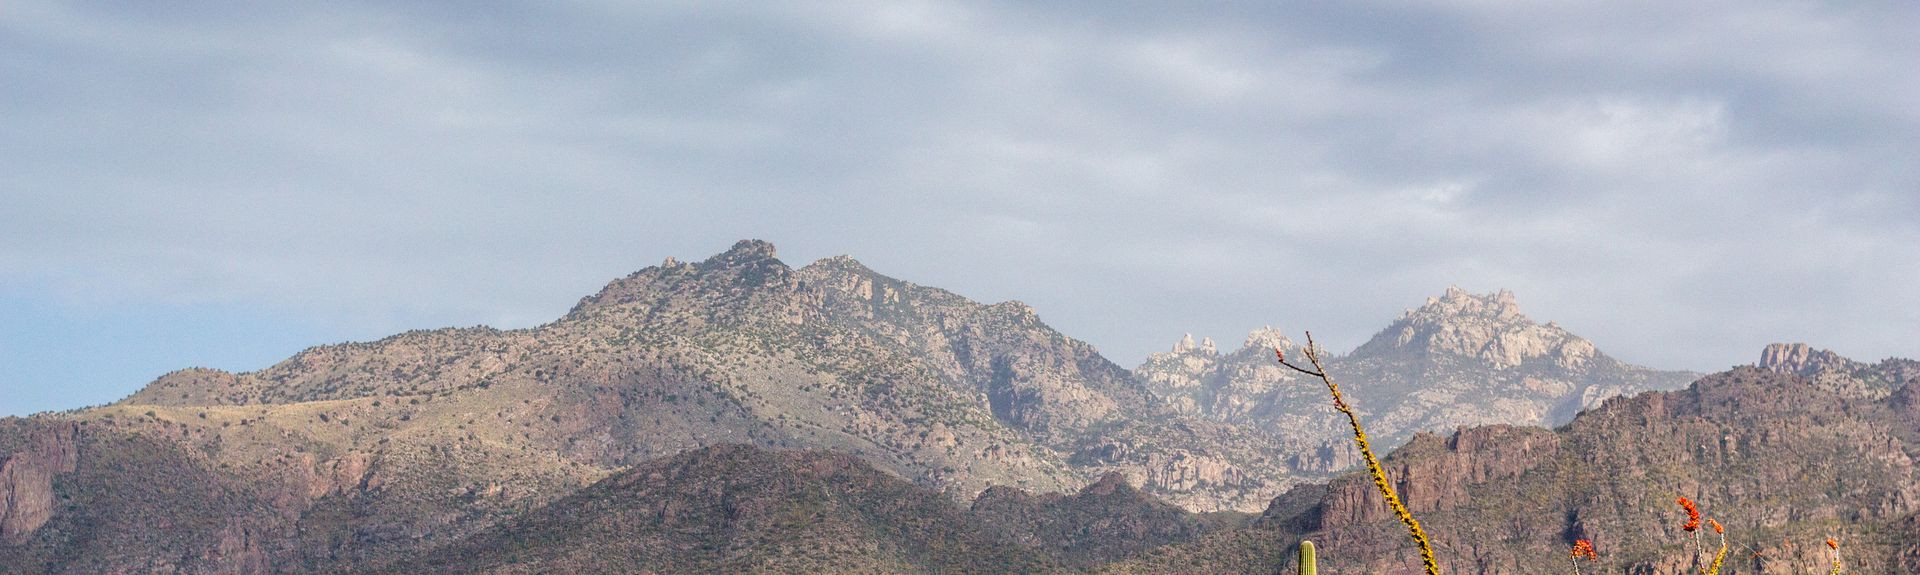 Mount Lemmon, Arizona, United States of America